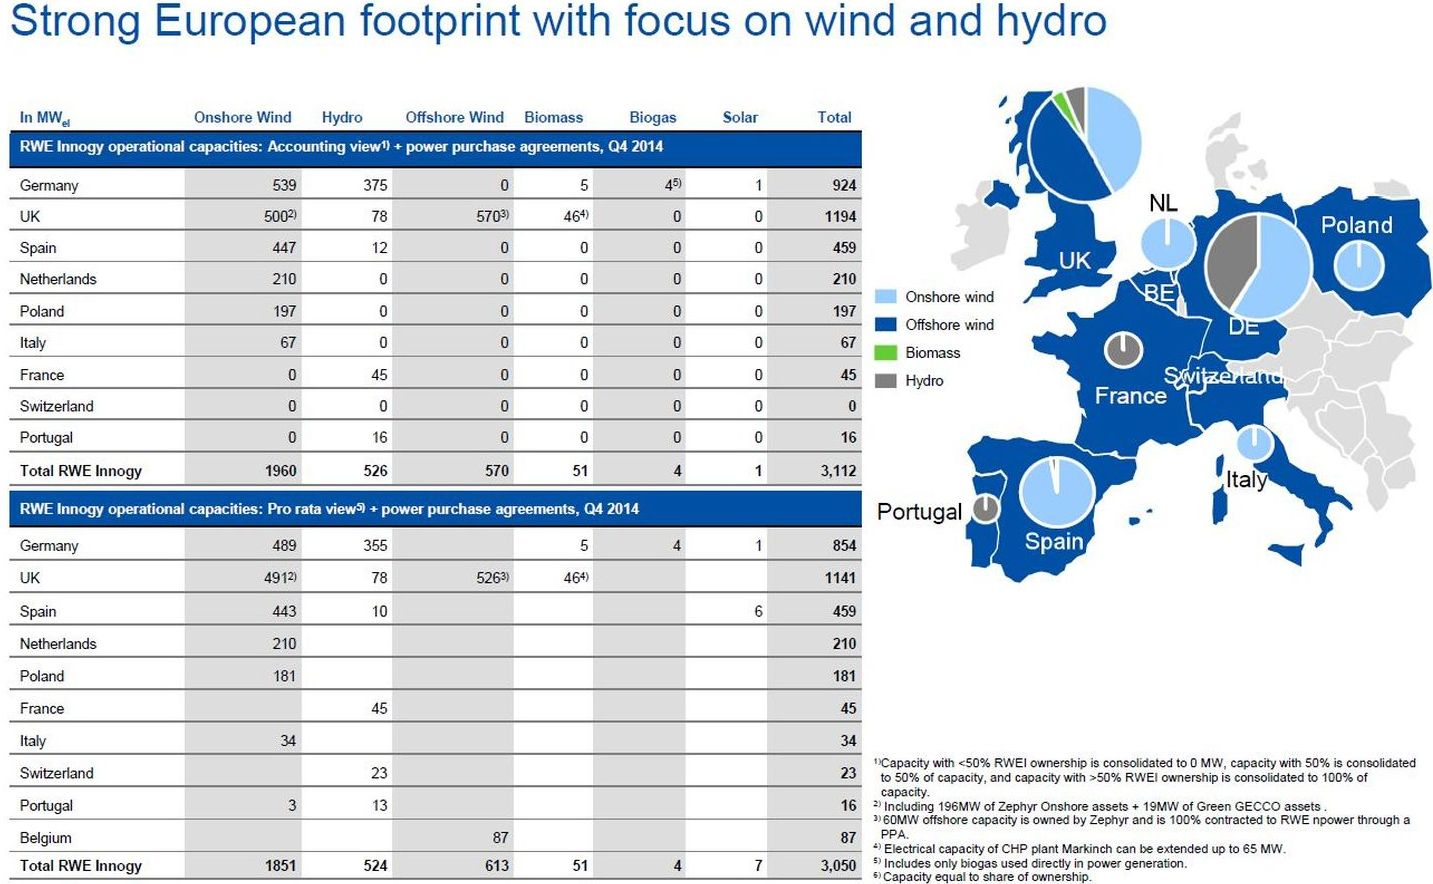 A infographic about the European footprint with focus on wind and hydro by the German energy supplier RWE.